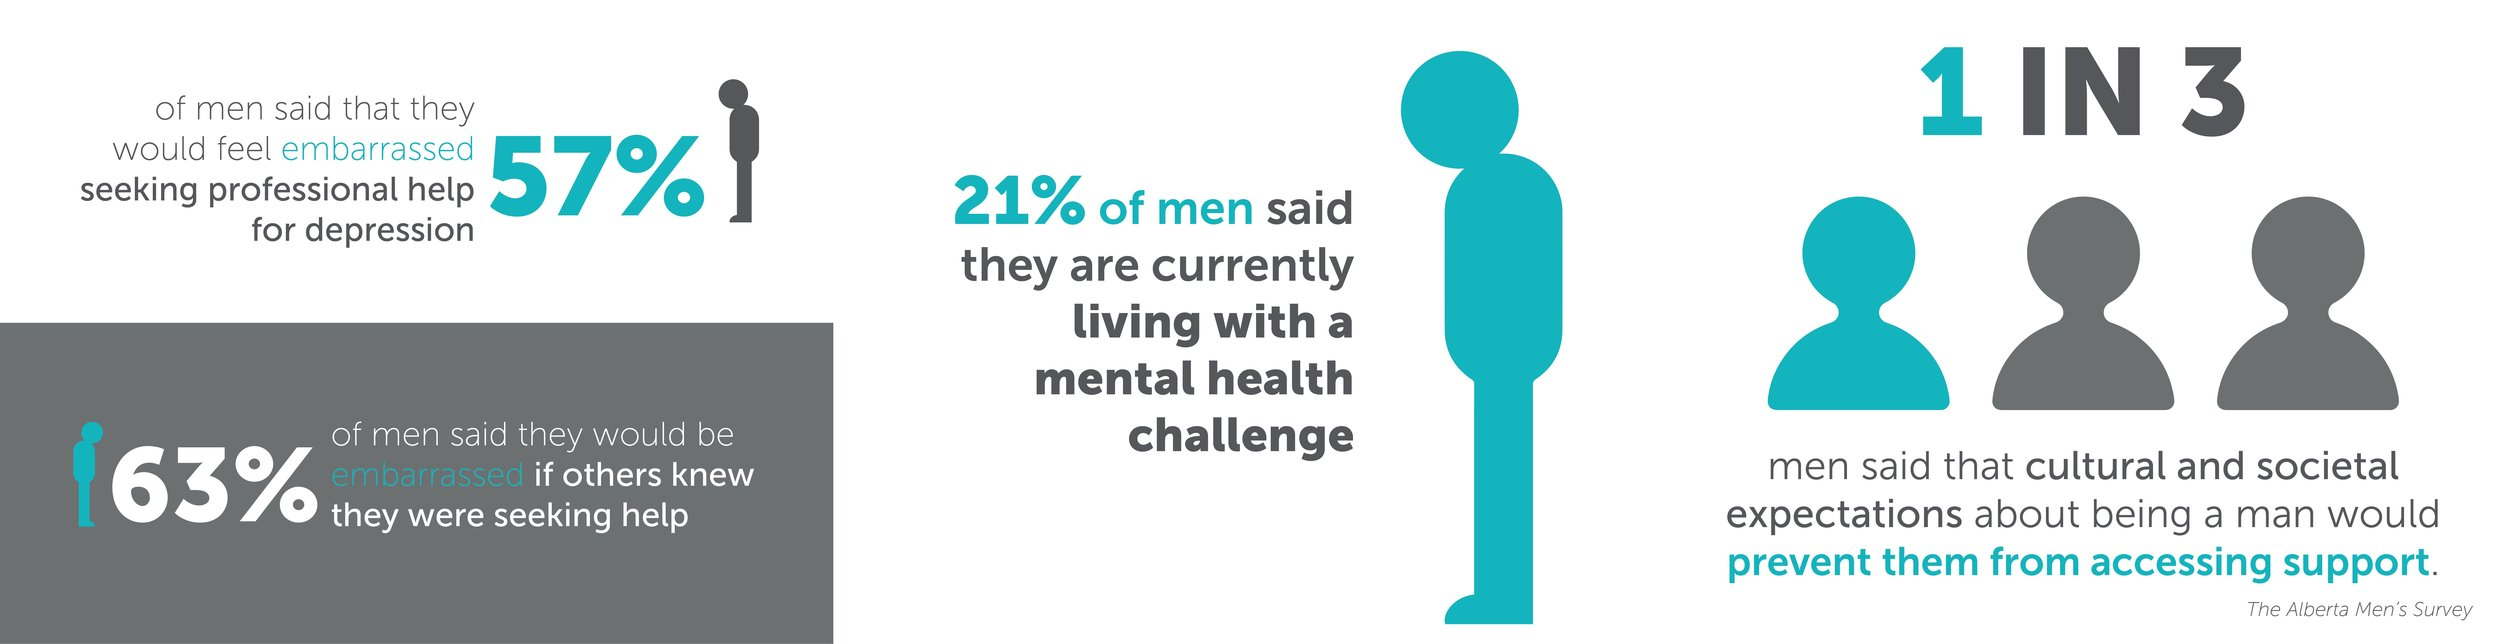 57% of men said that they would feel embarrassed seeking professional help for depression, but 21% of men also said that they are currently living with a mental health challenge